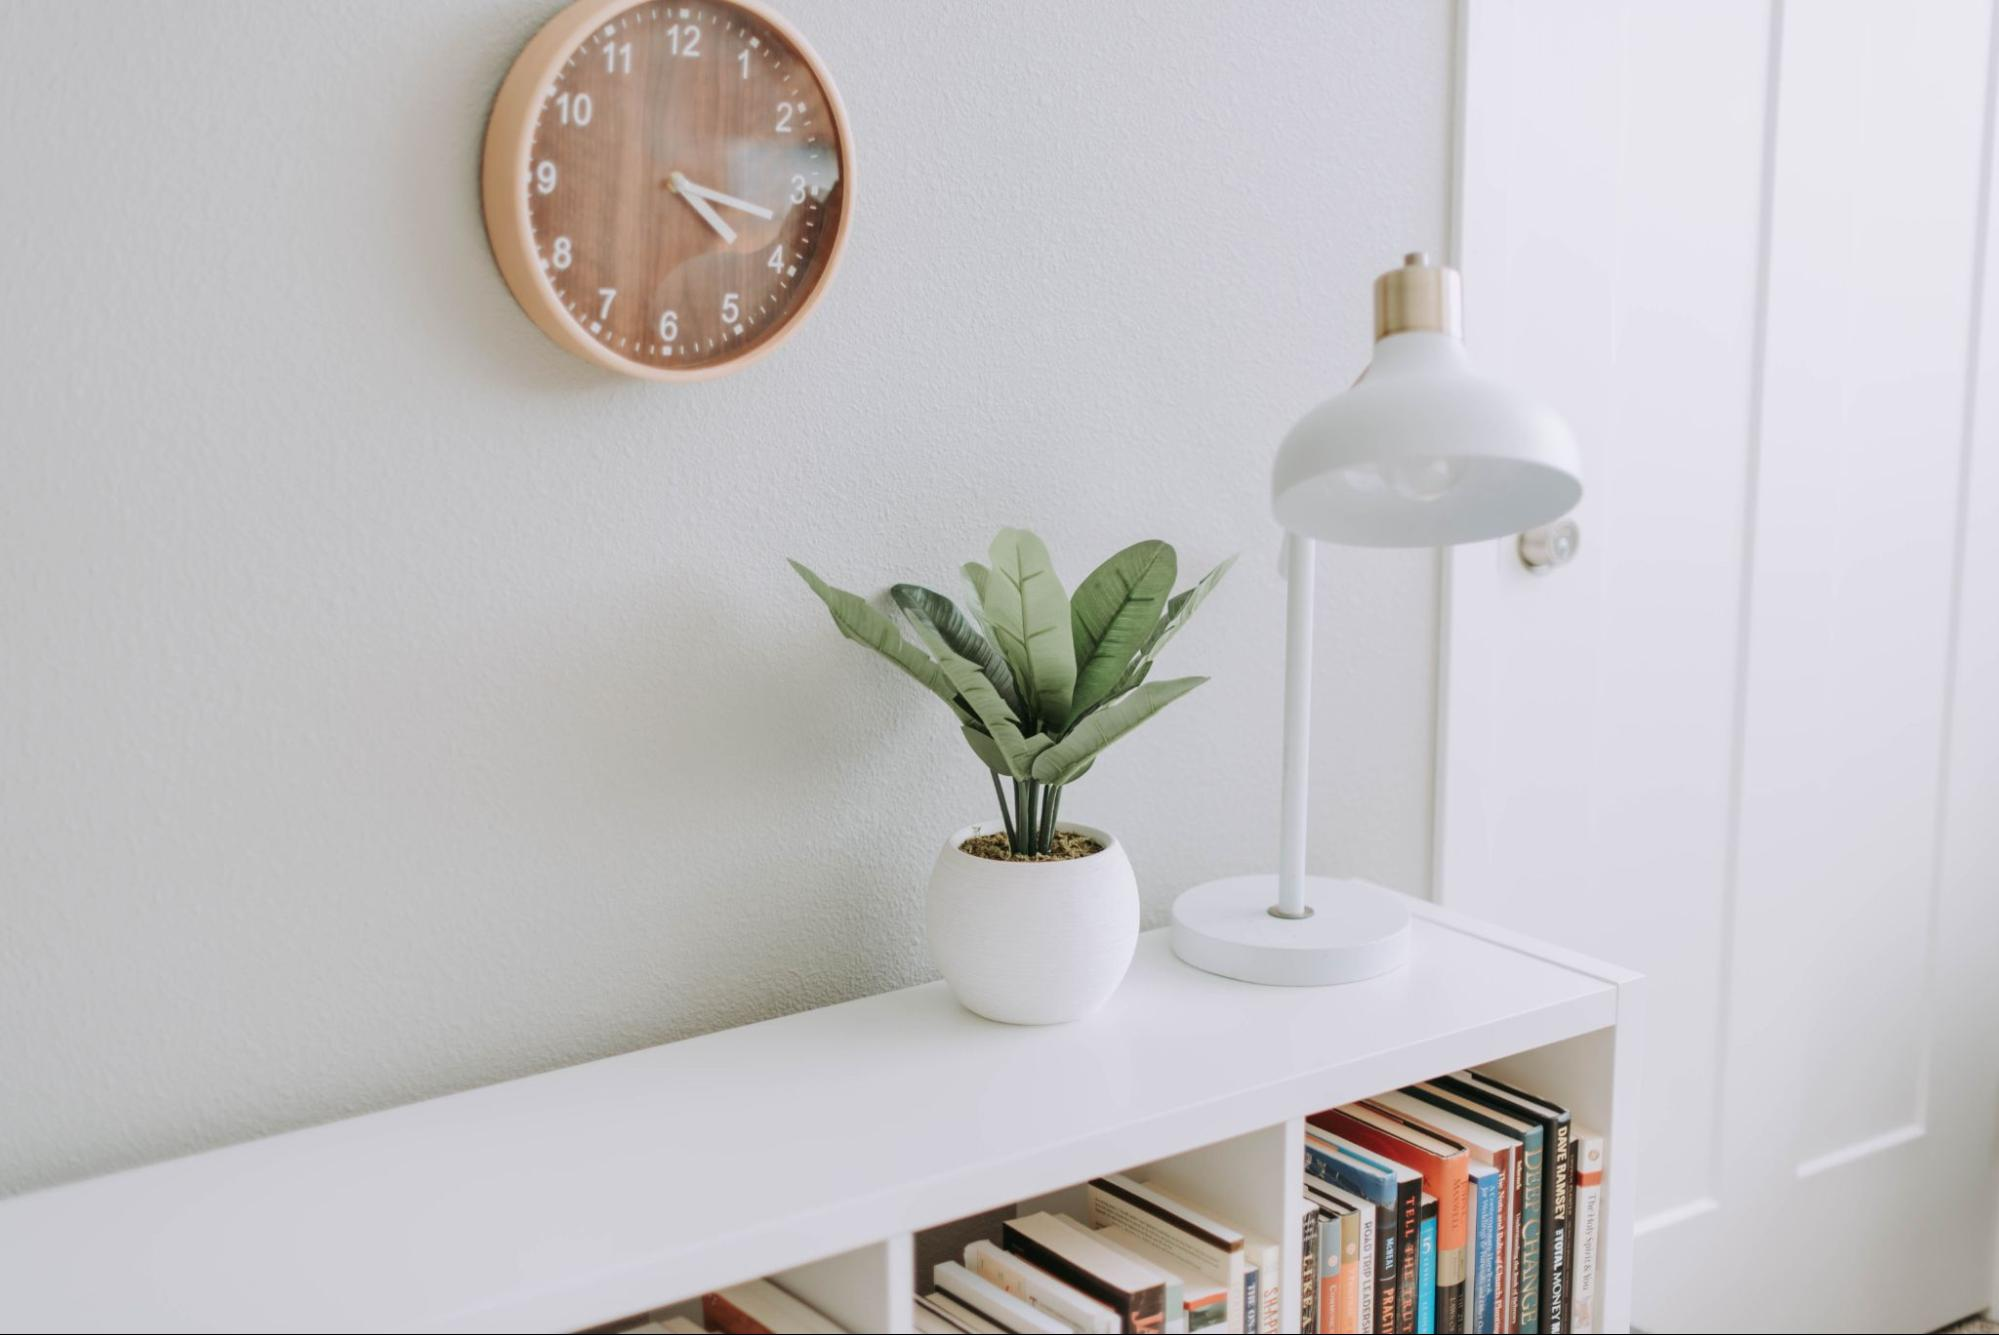 clean-and-light-room-with-plant-and-lamp-on-table-stress-management-techniques